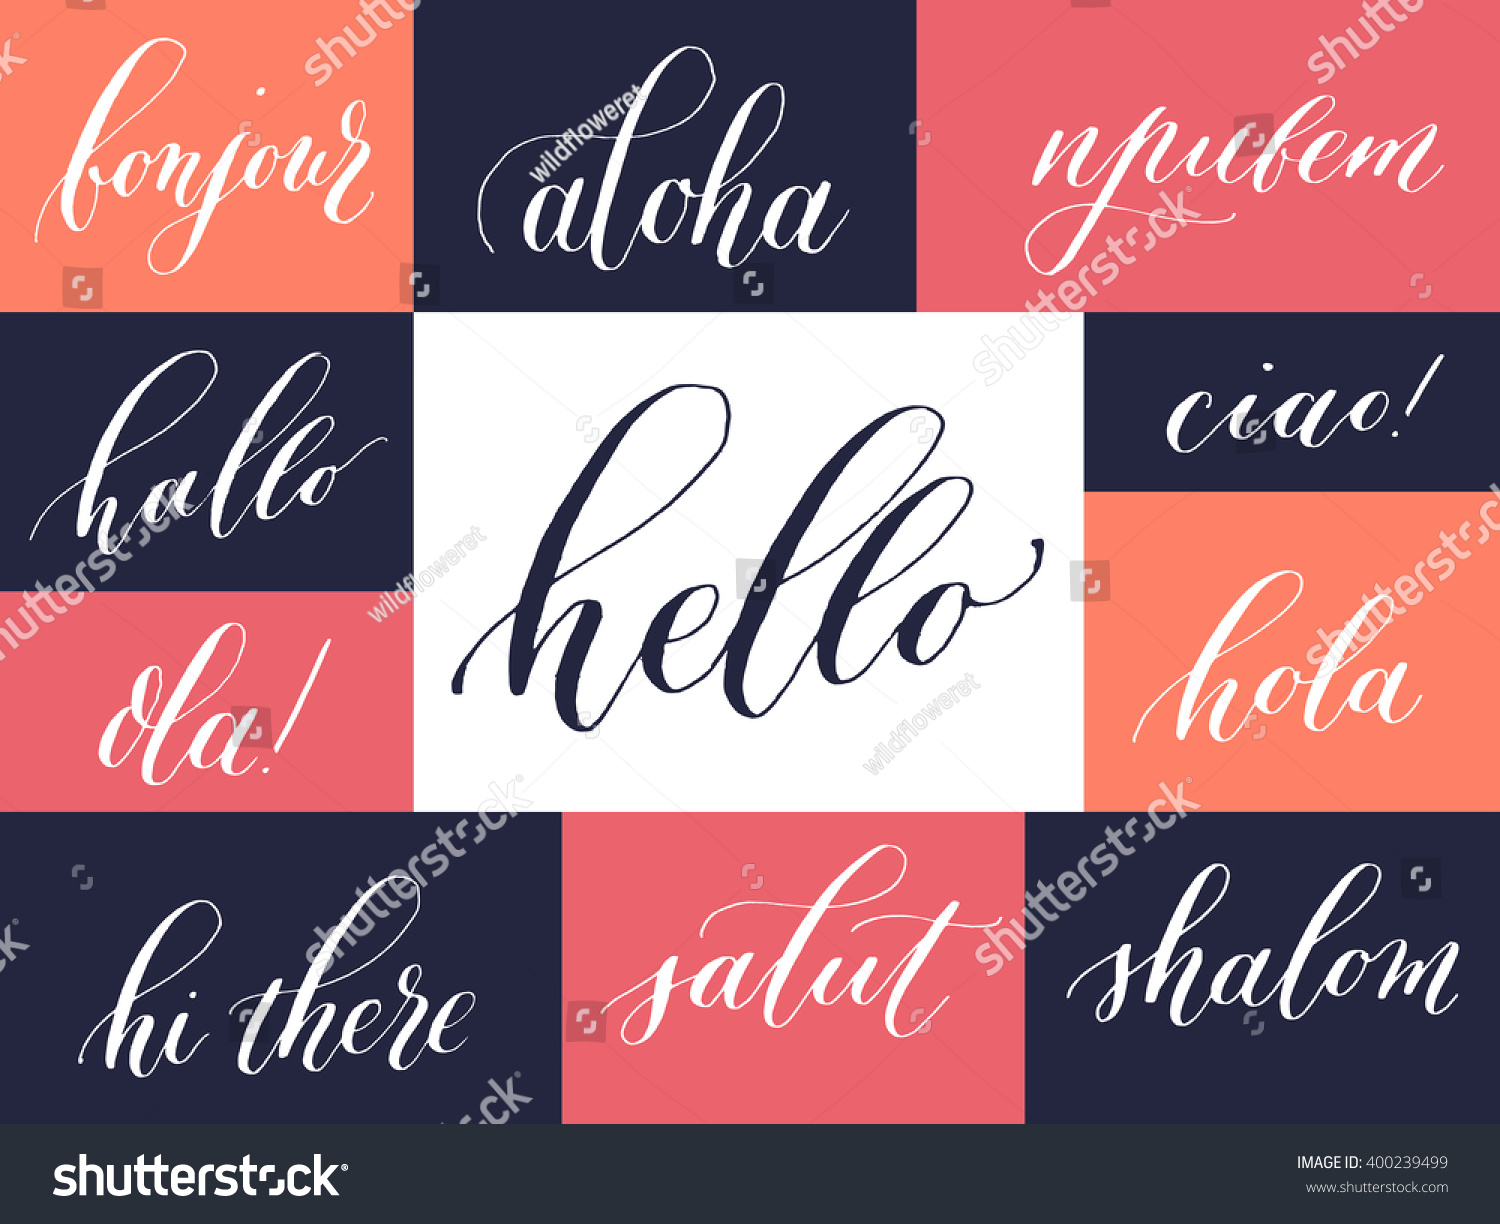 Hand drawn hello greeting expressions different stock photo photo hand drawn hello greeting expressions in different languages english french italian etc m4hsunfo